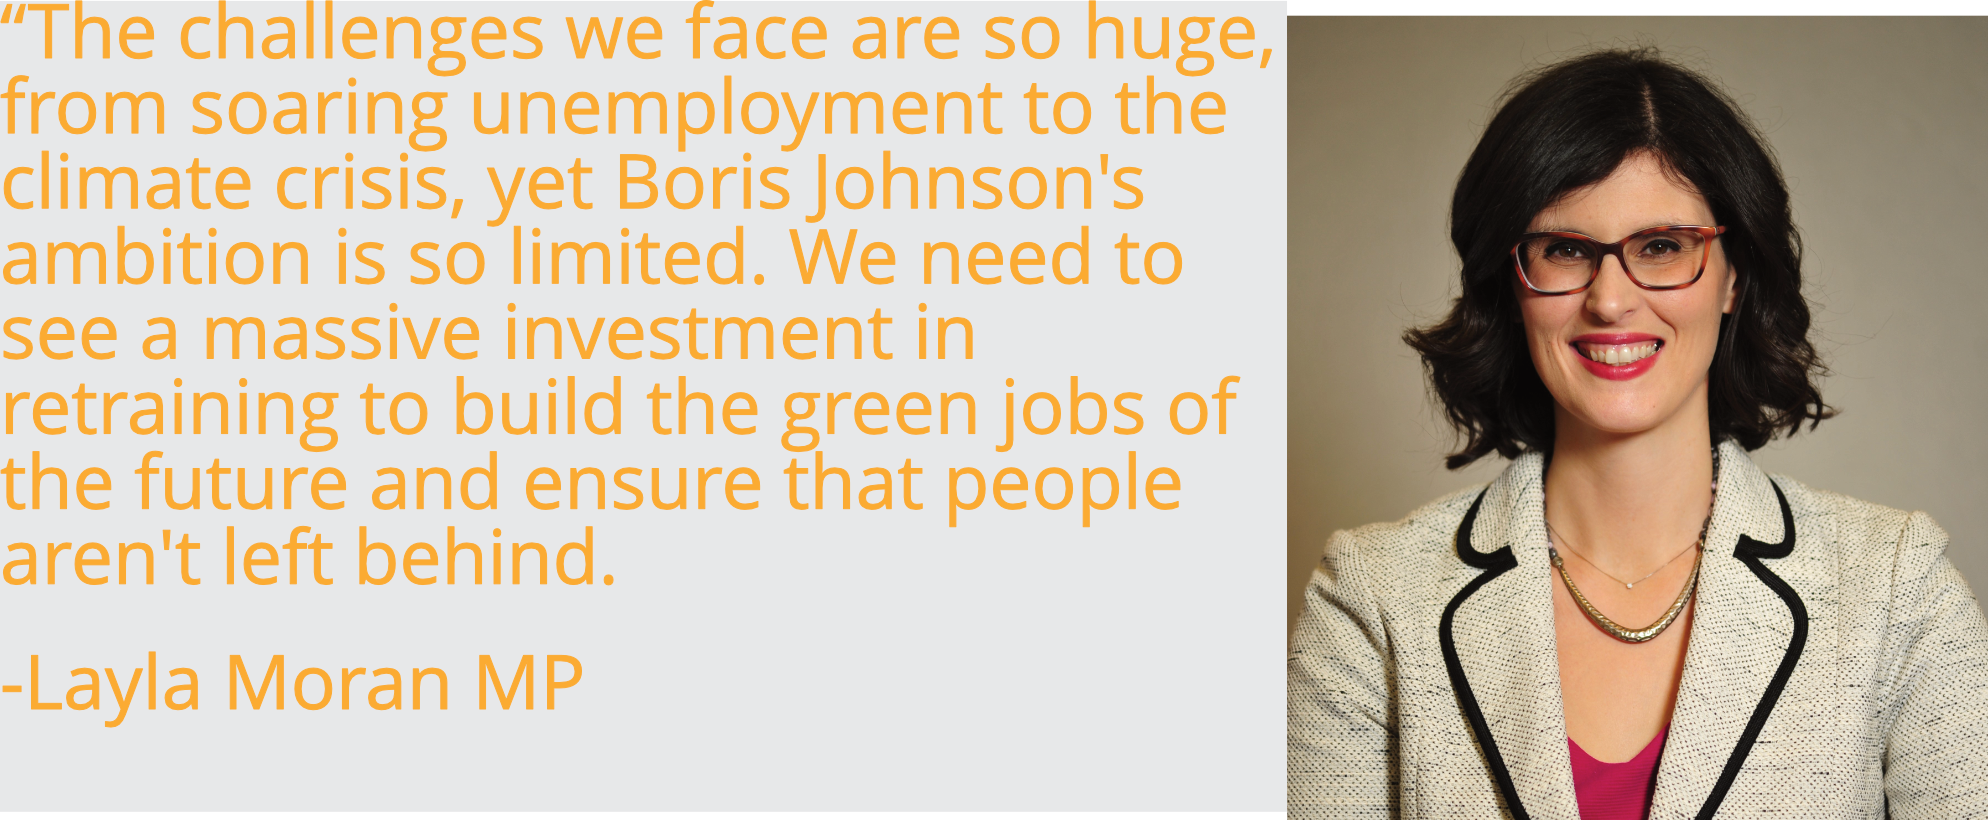 """The challenges we face are so huge, from soaring unemployment to the climate crisis, yet Boris Johnson's ambition is so limited. We need to see a massive investment in retraining to build the green jobs of the future and ensure that people aren't left behind."